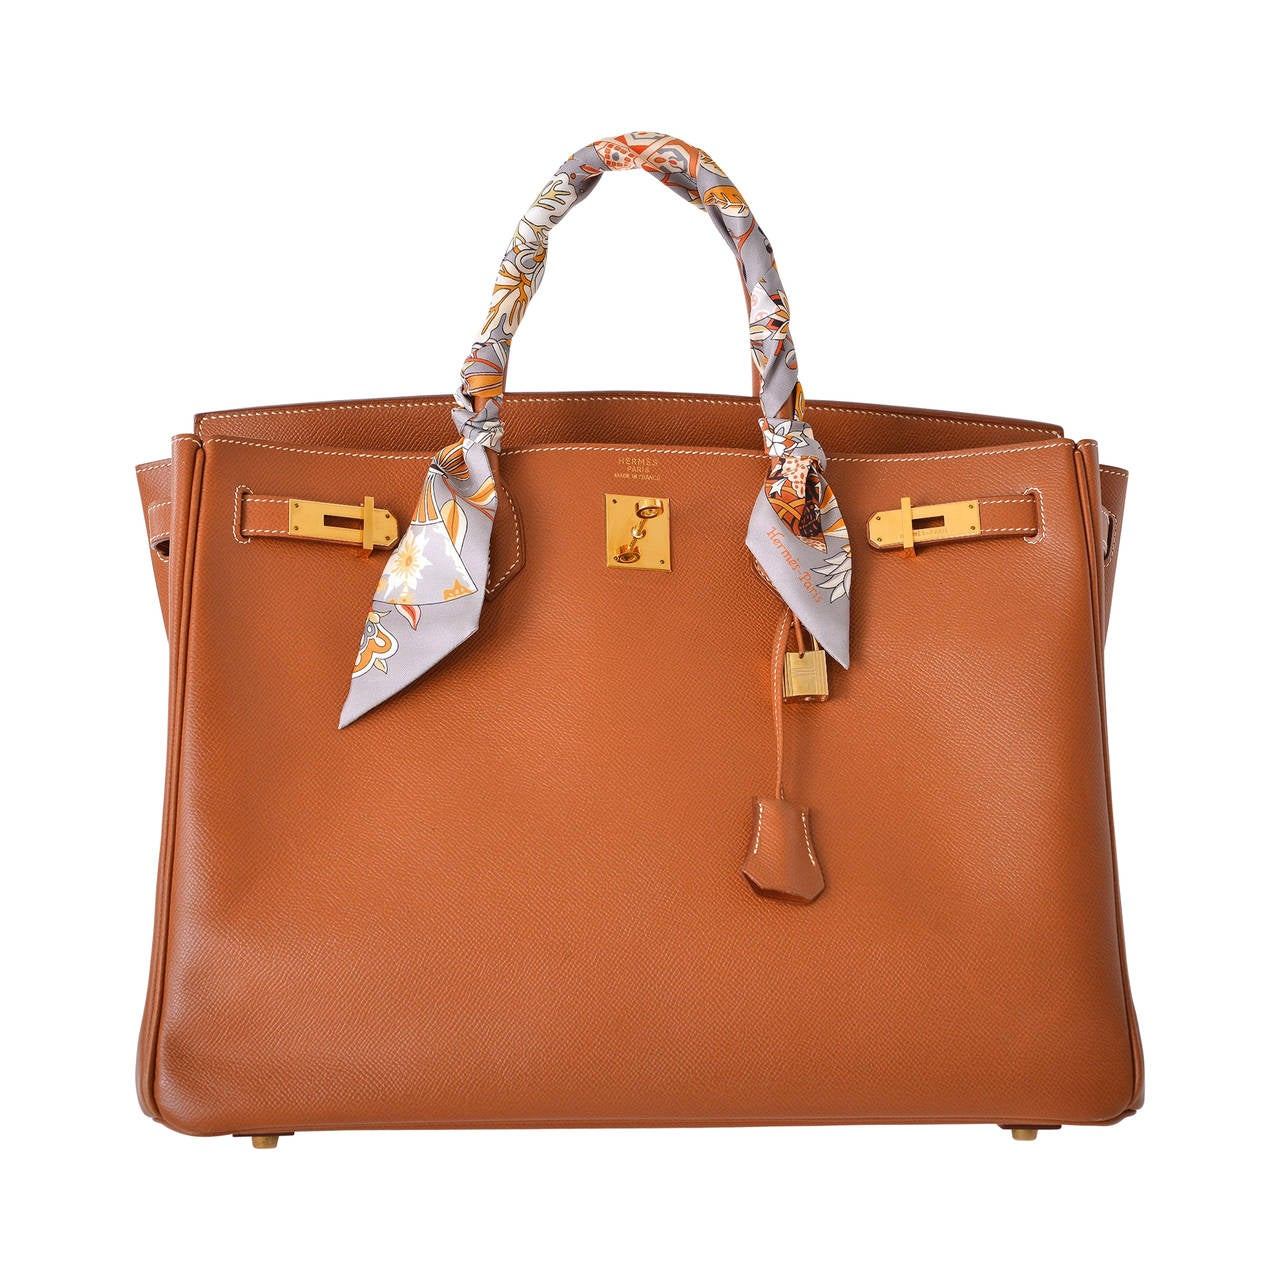 hermes bags replica - JaneFinds - NYC Tri-State/Miami, NY 12345 - 1stdibs - Page 4